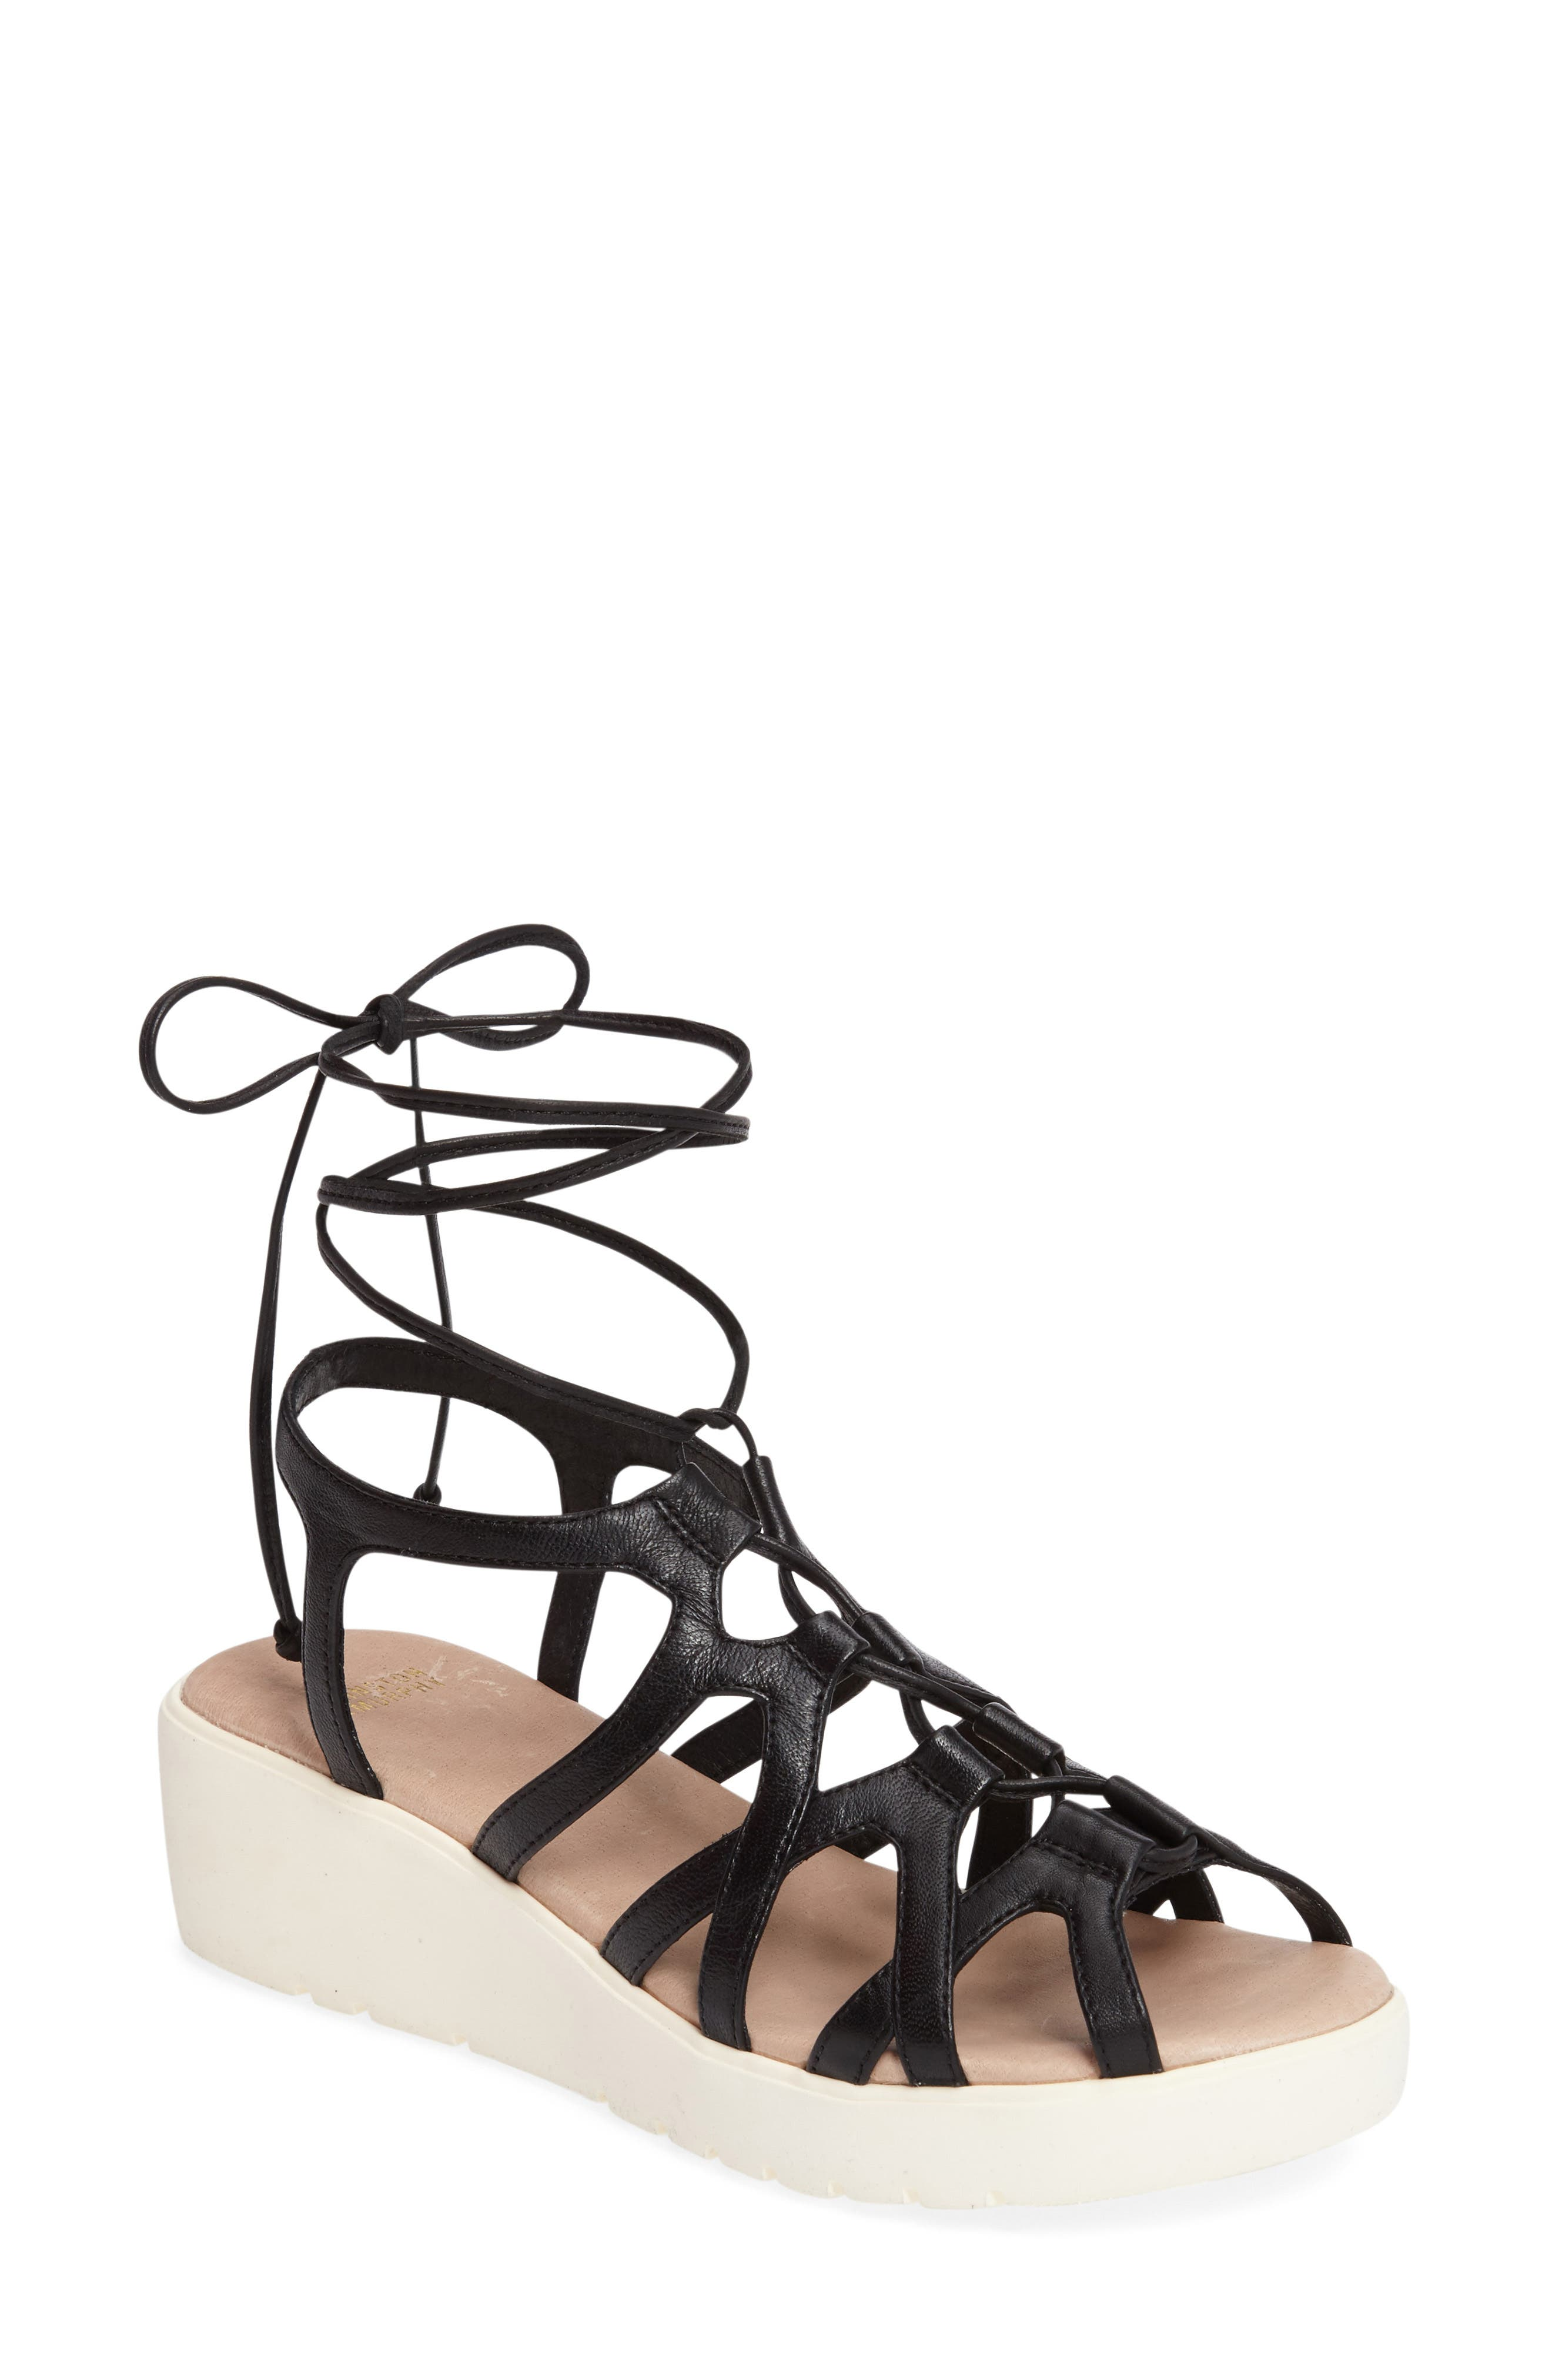 Chasity Sport Sandal,                         Main,                         color, BLACK LEATHER